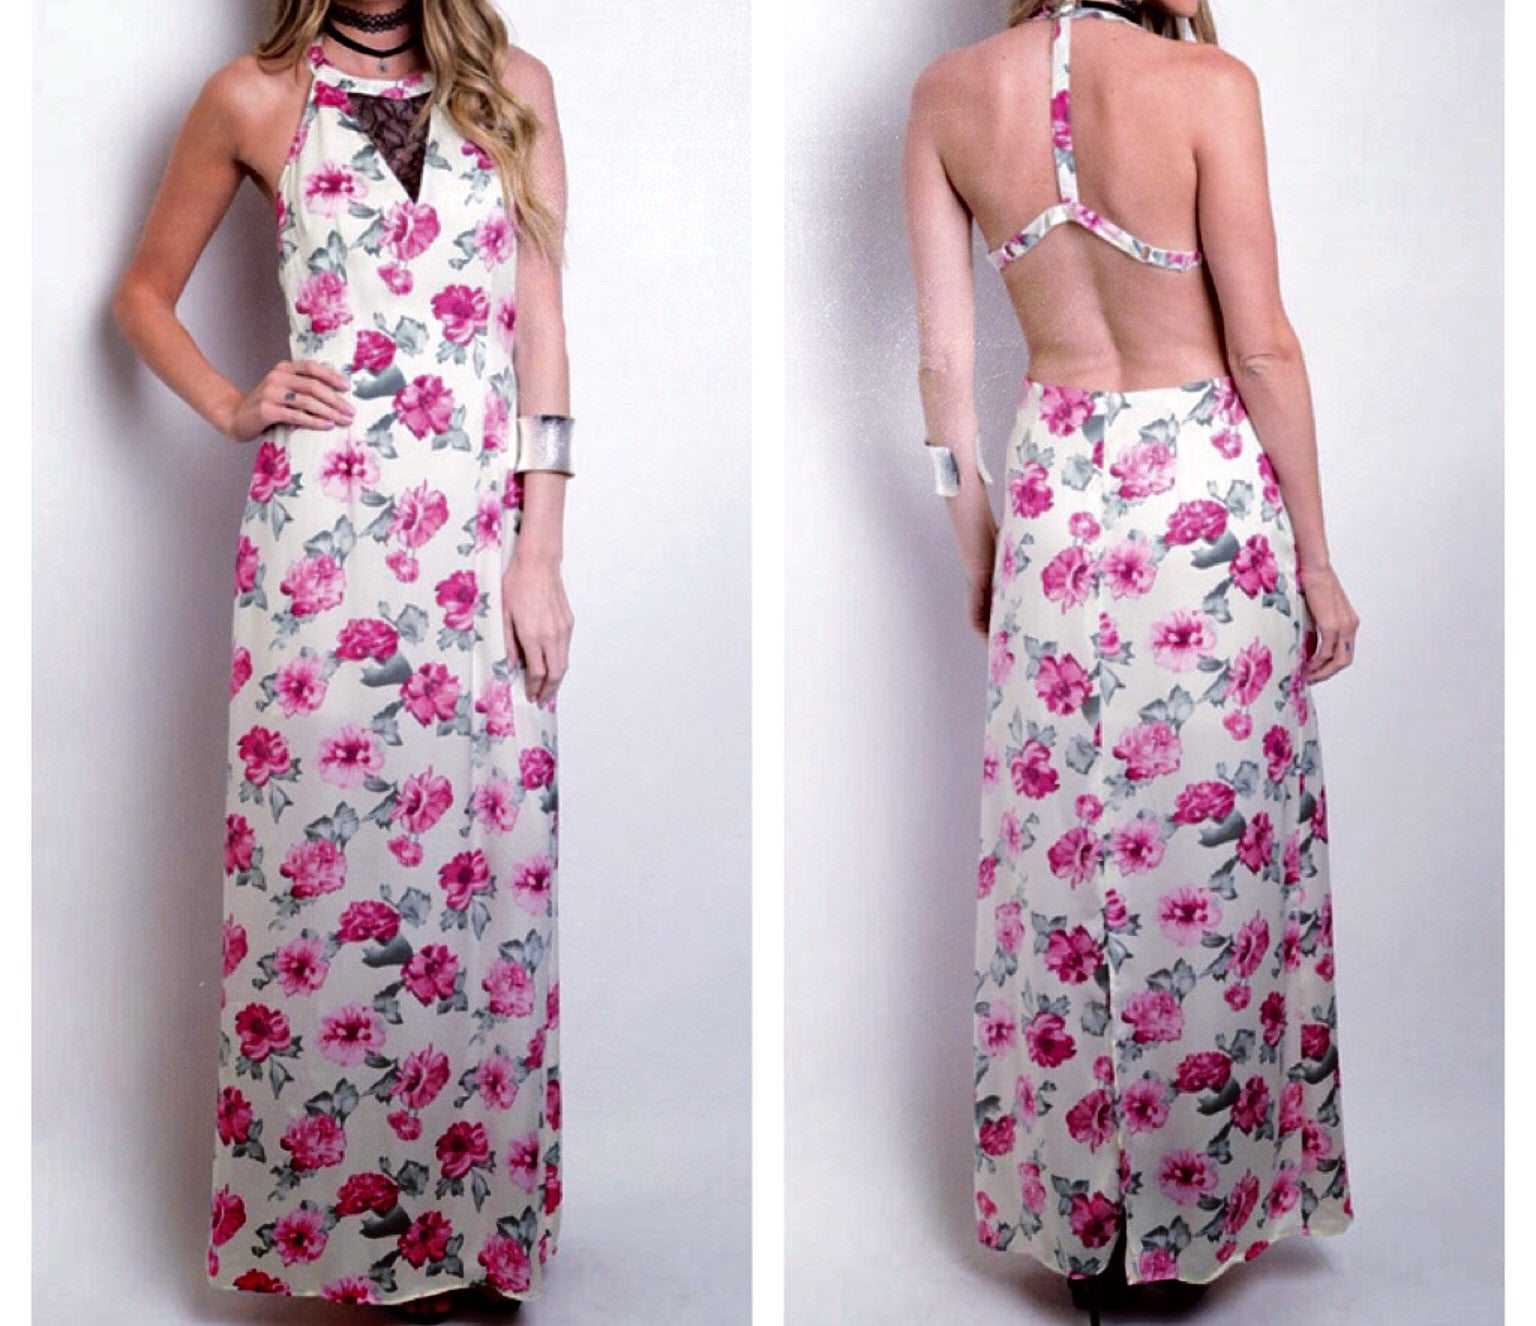 Lace Floral Cream Maxi Dress - BohoLocoBoutique